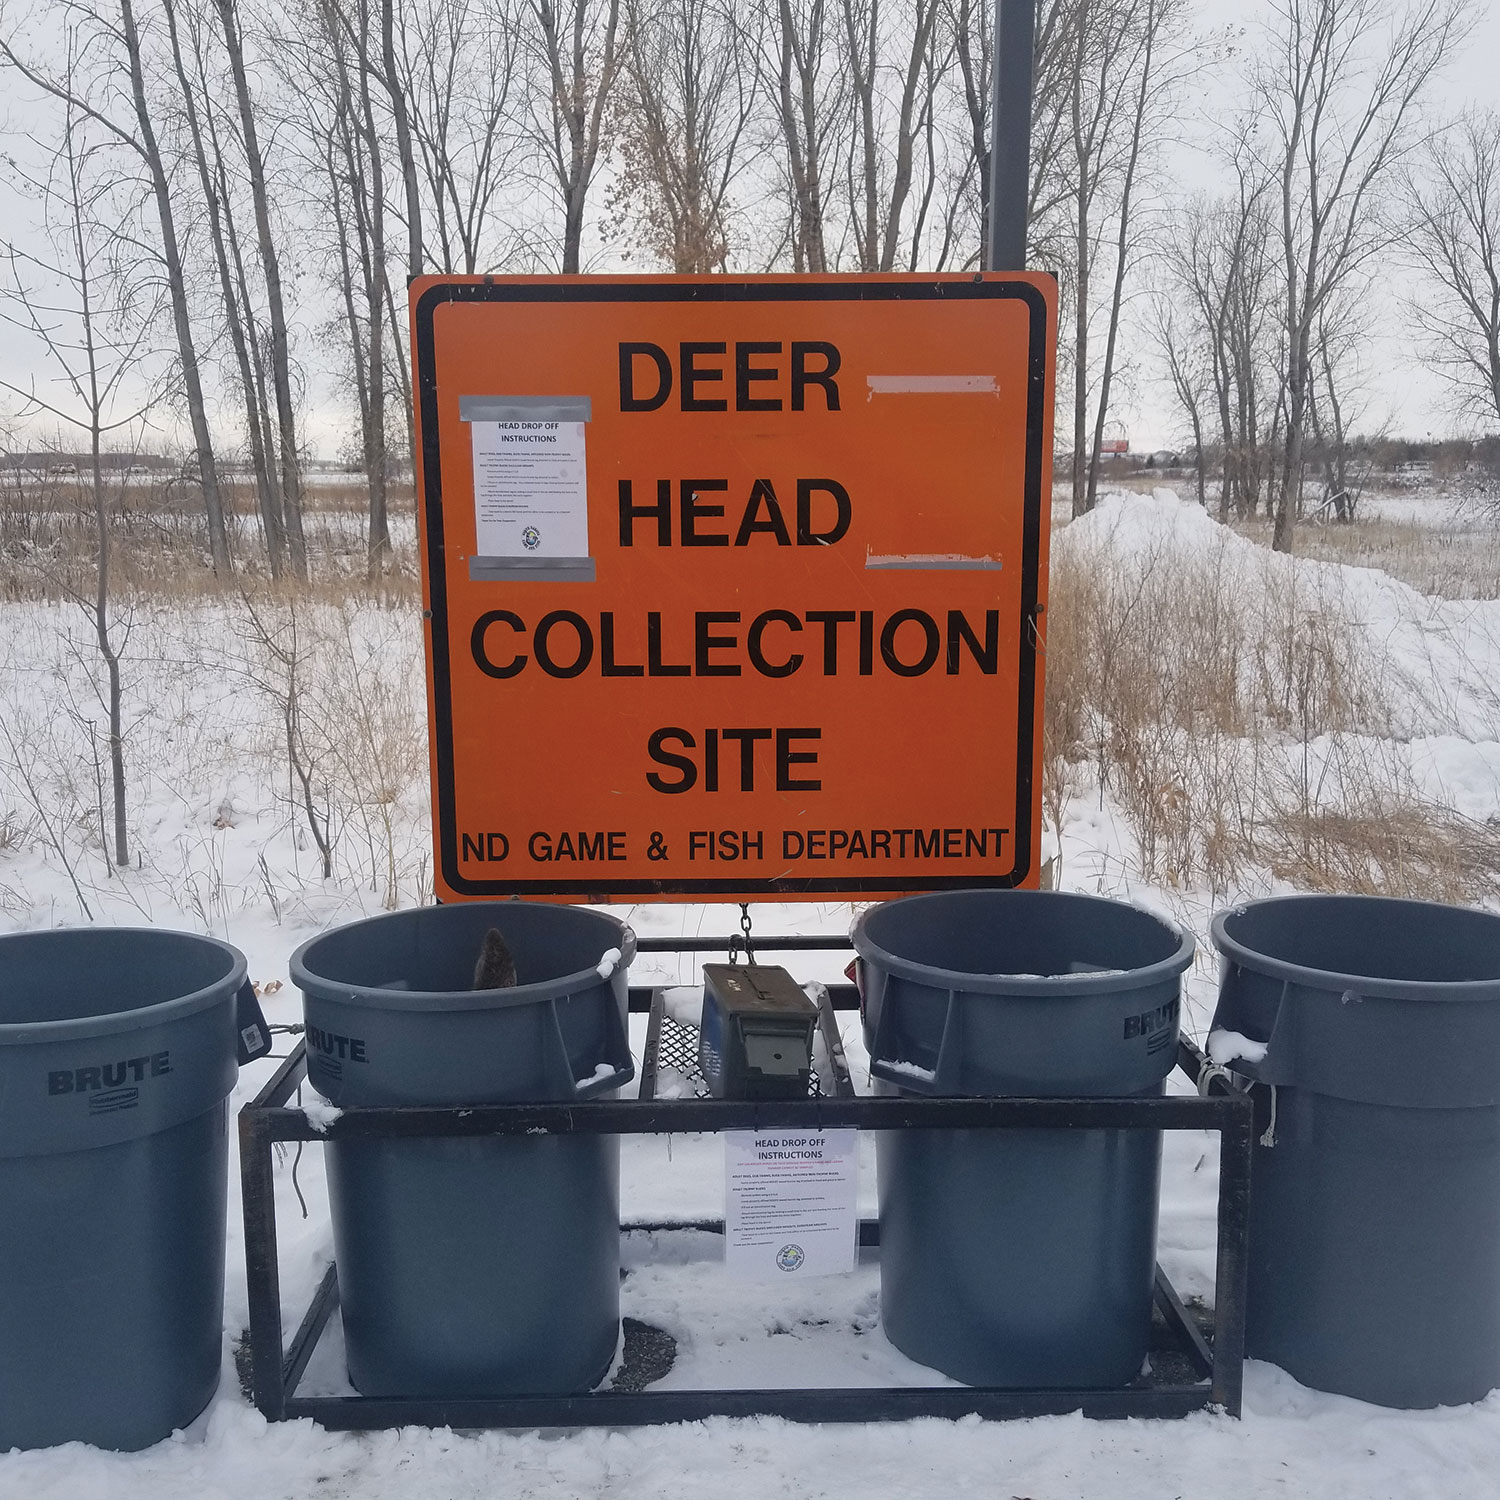 Deer head collection site